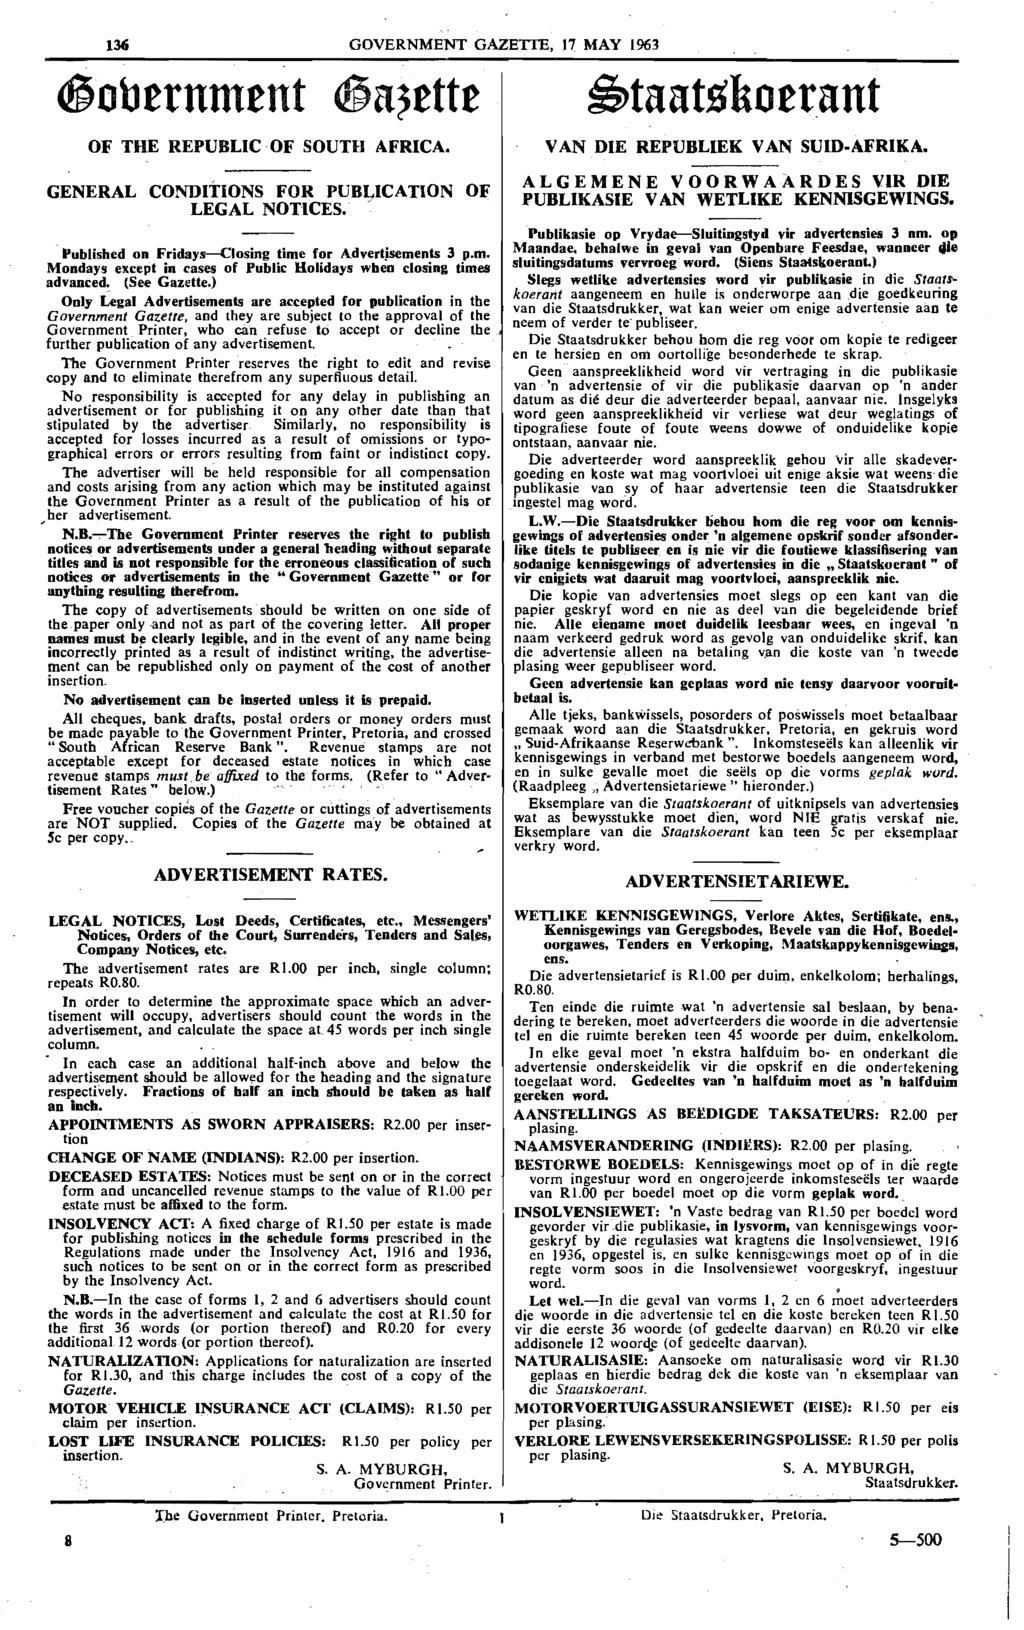 136 GOVERNMENT GAZETTE, 17 MAY 1963 ~obtrnmtnt ~a~tttt OF THE REPUBLIC OF SOUTH AFRICA. GENERAL CONDITIONS FOR PUBt;.ICATlON OF LEGAL NOTICES... Published on Fridays-Closing time for Advertisements 3 p.